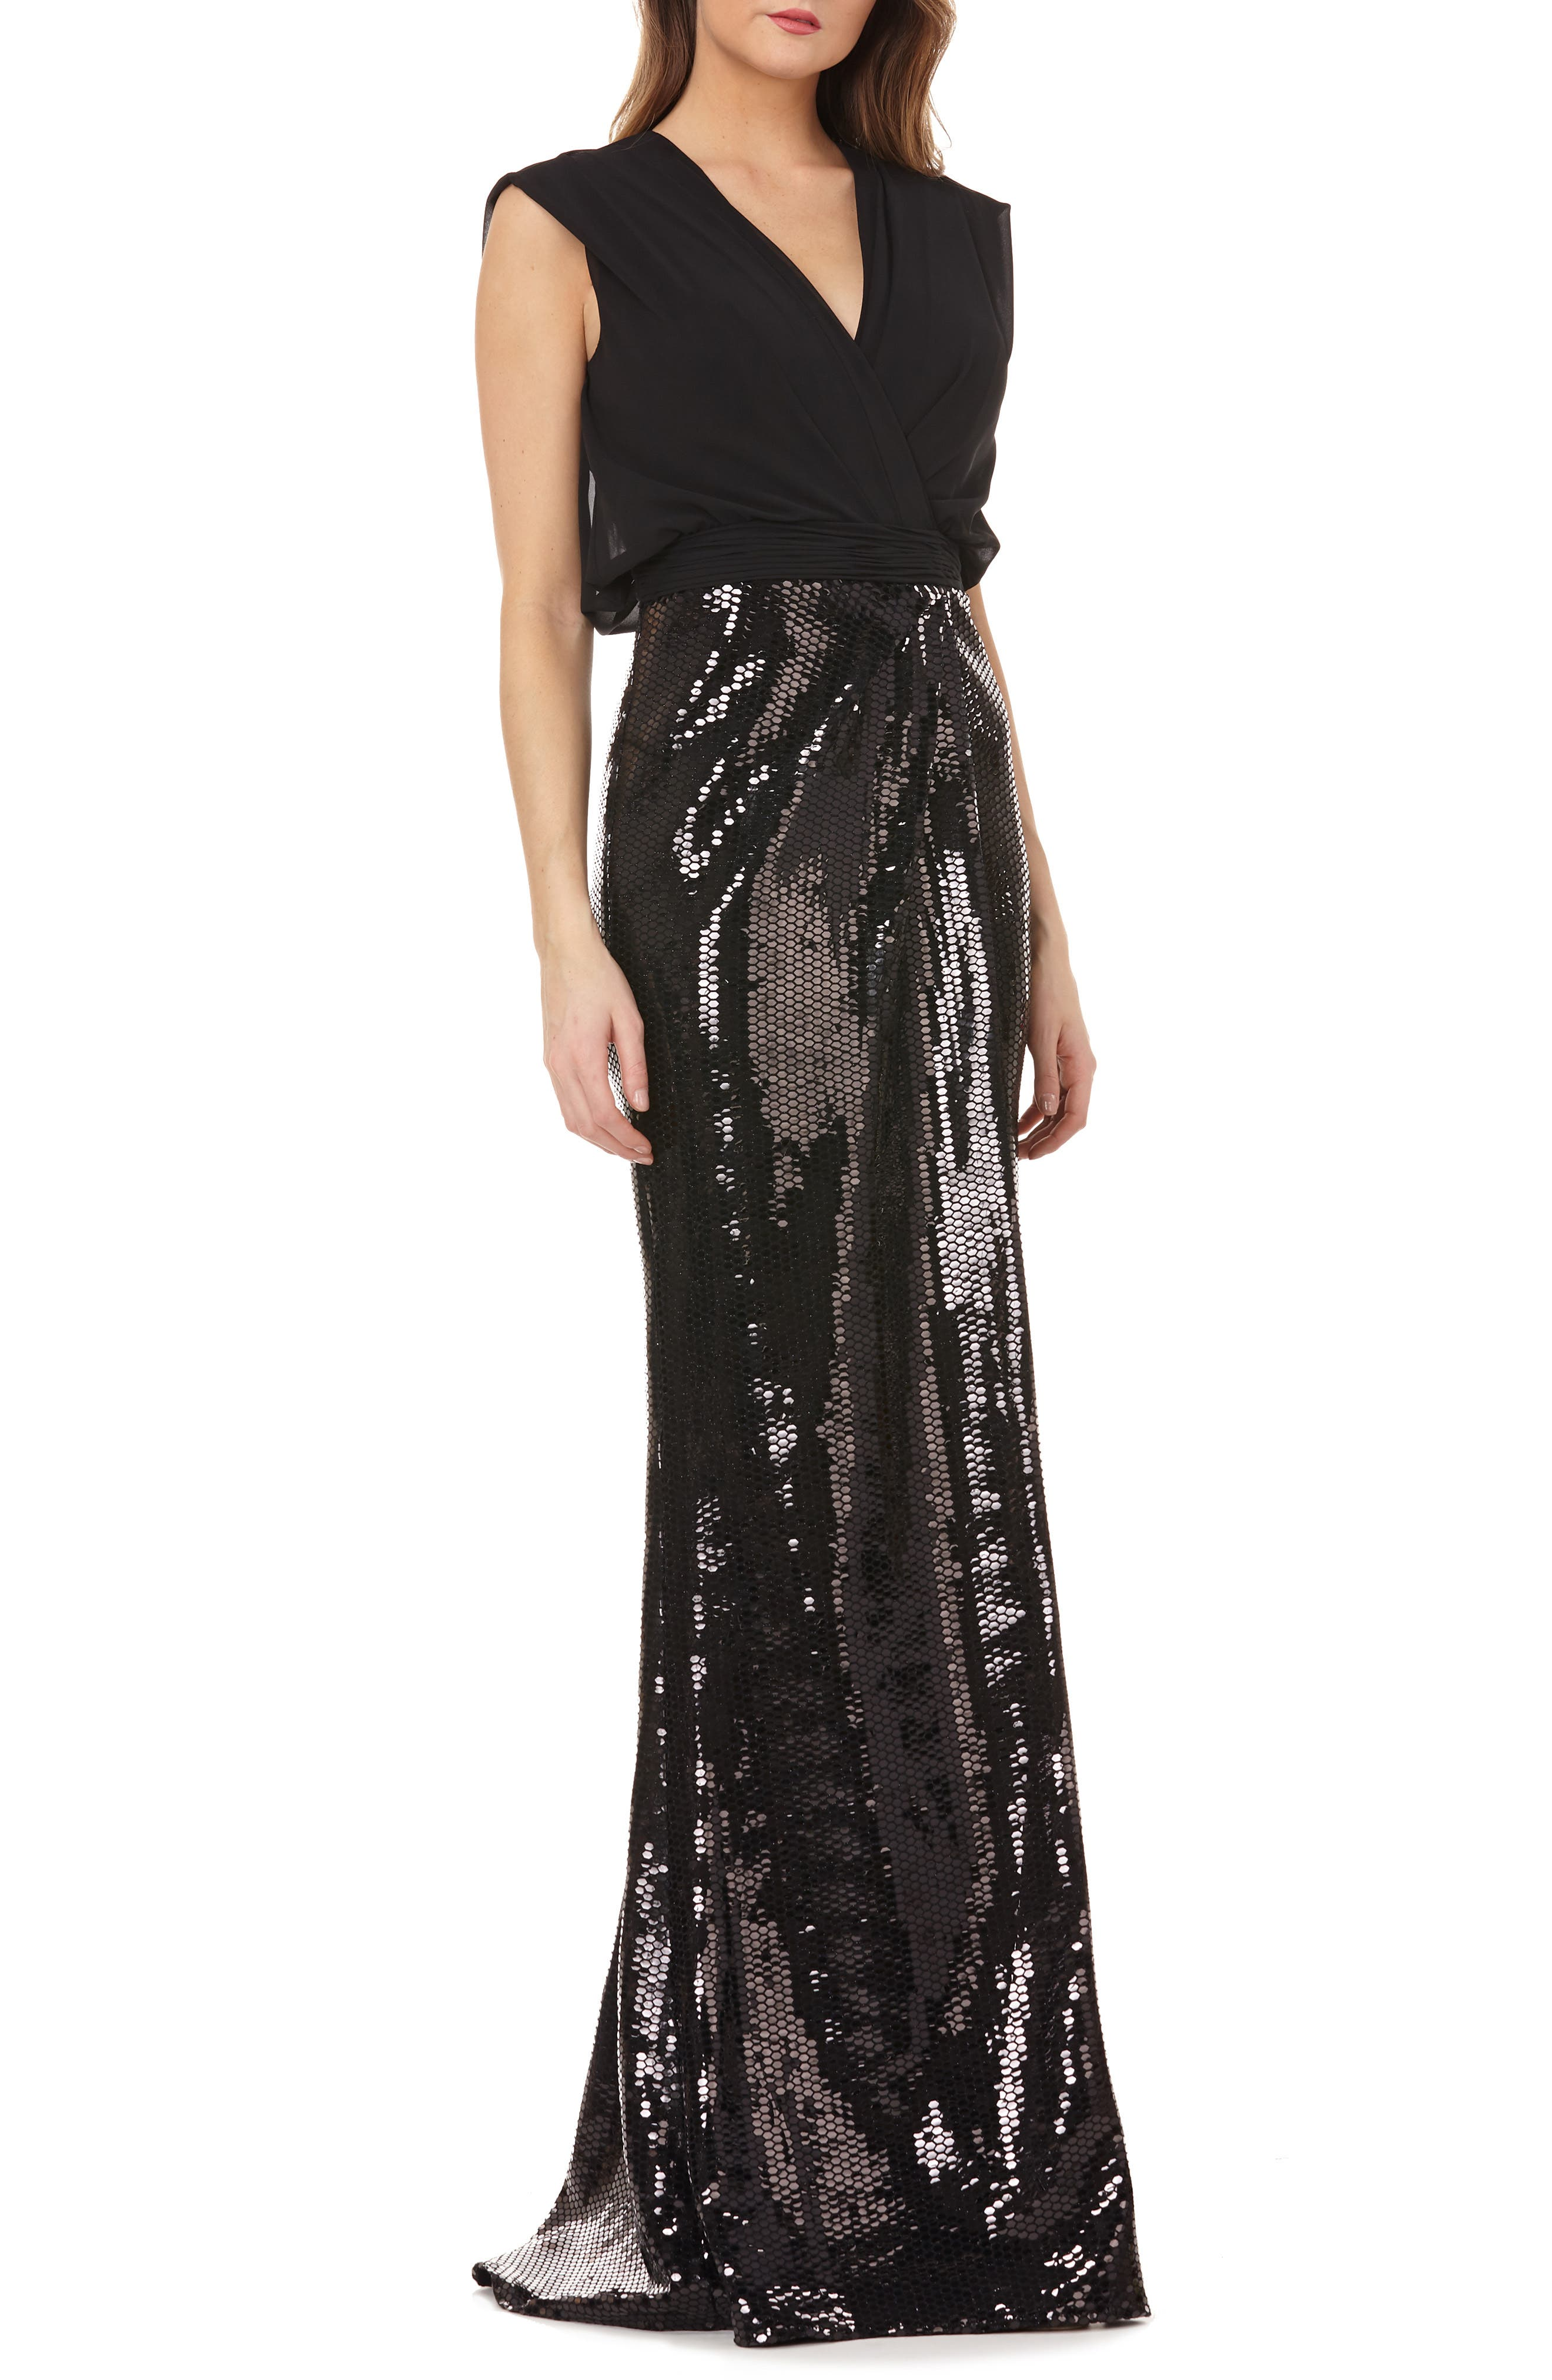 KAY UNGER Sequin Gown, Main, color, 001